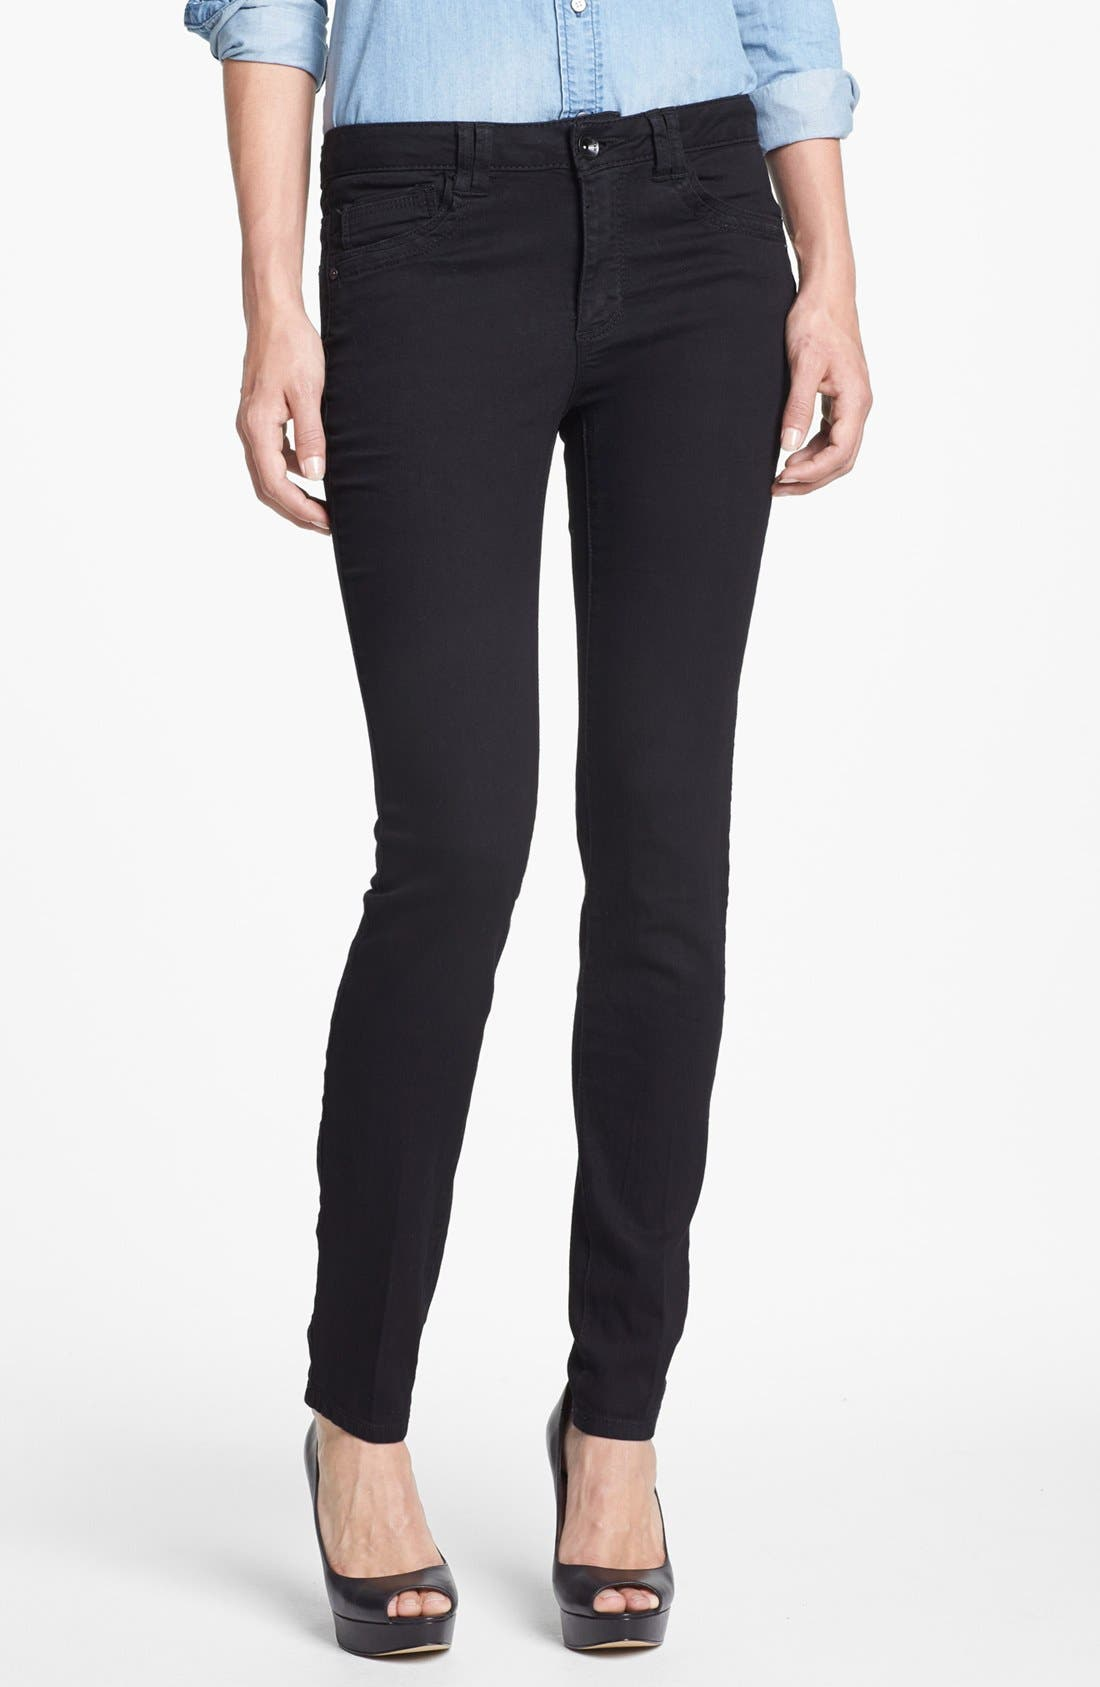 Main Image - Wit & Wisdom Skinny Jeans (Black) (Nordstrom Exclusive)